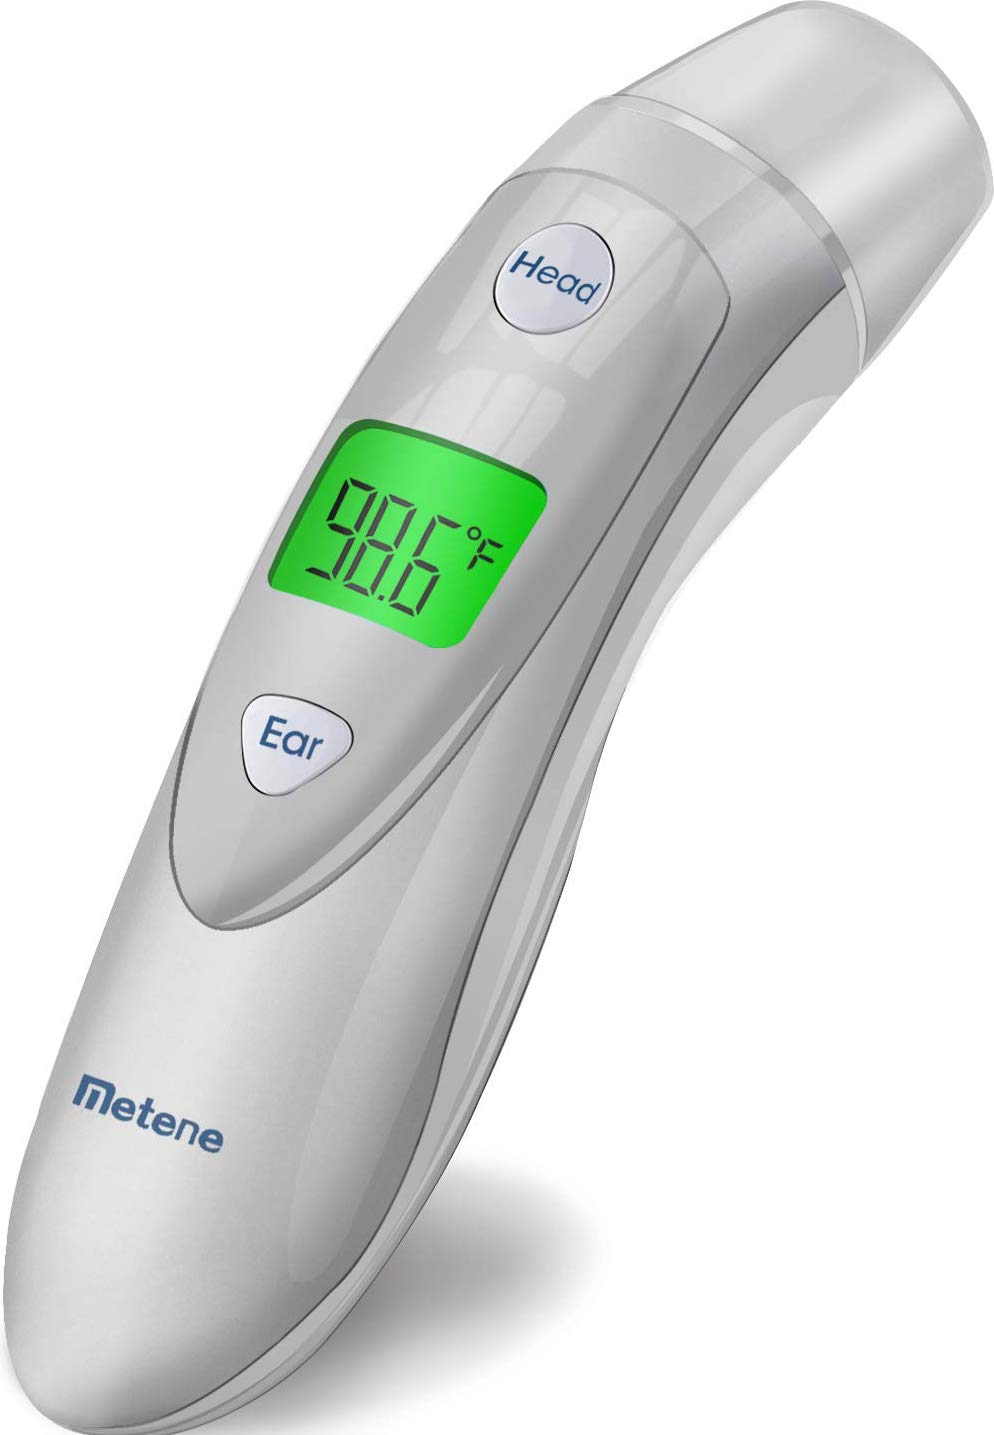 metene-forehead-thermometer-render-cropped